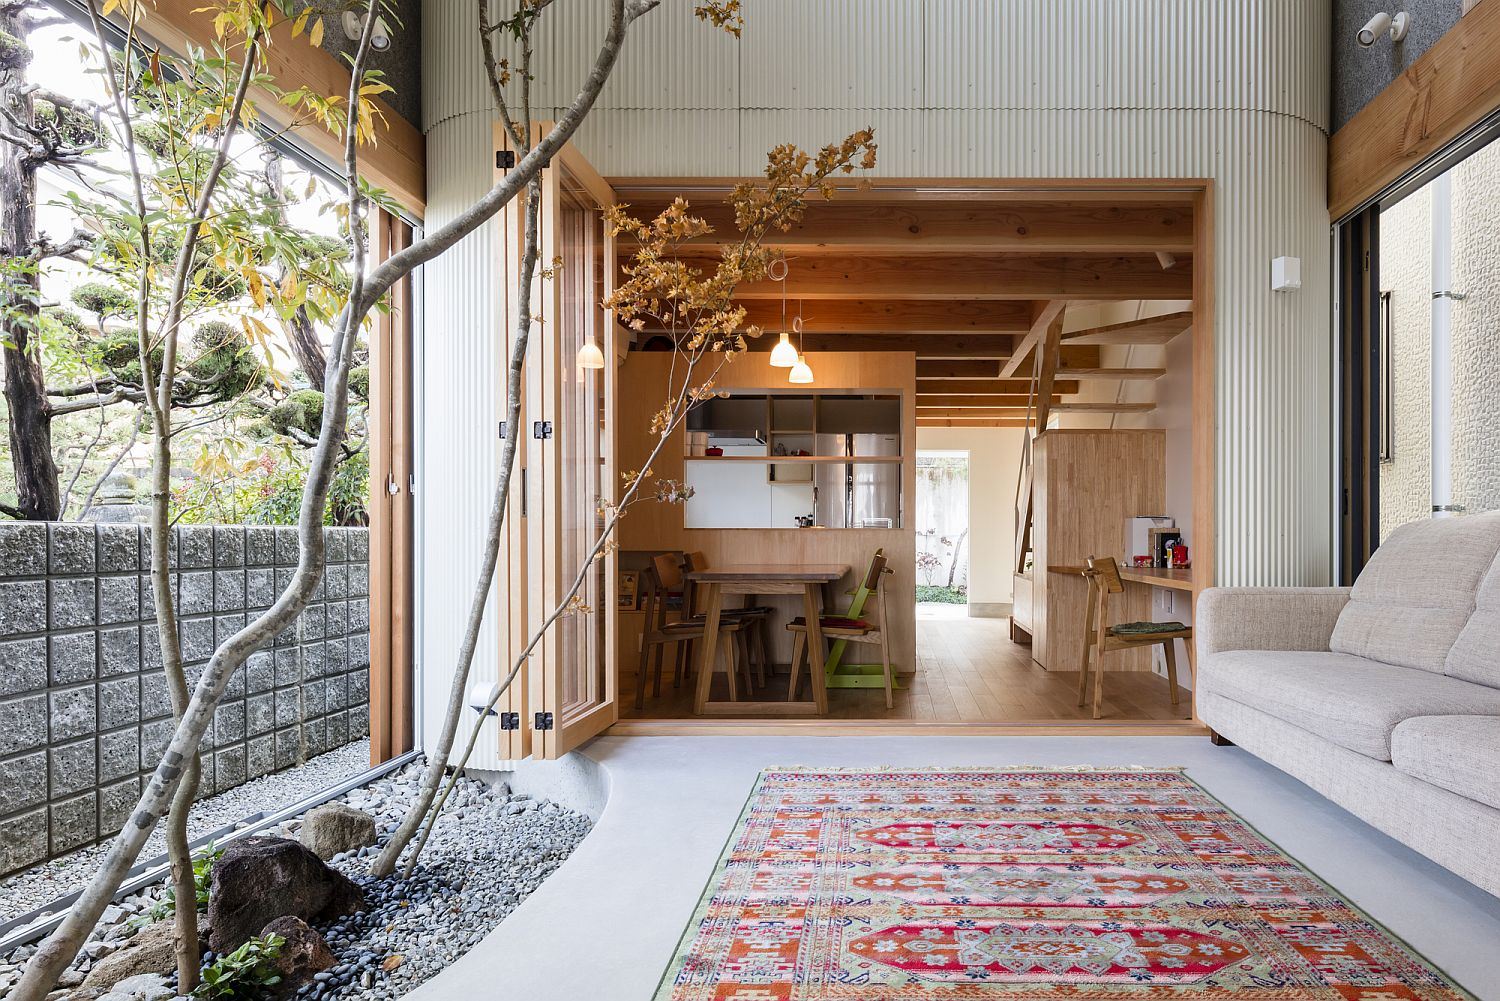 Japanese Home on Narrow Lot Embraces Greenery with an Indoor Dry Garden